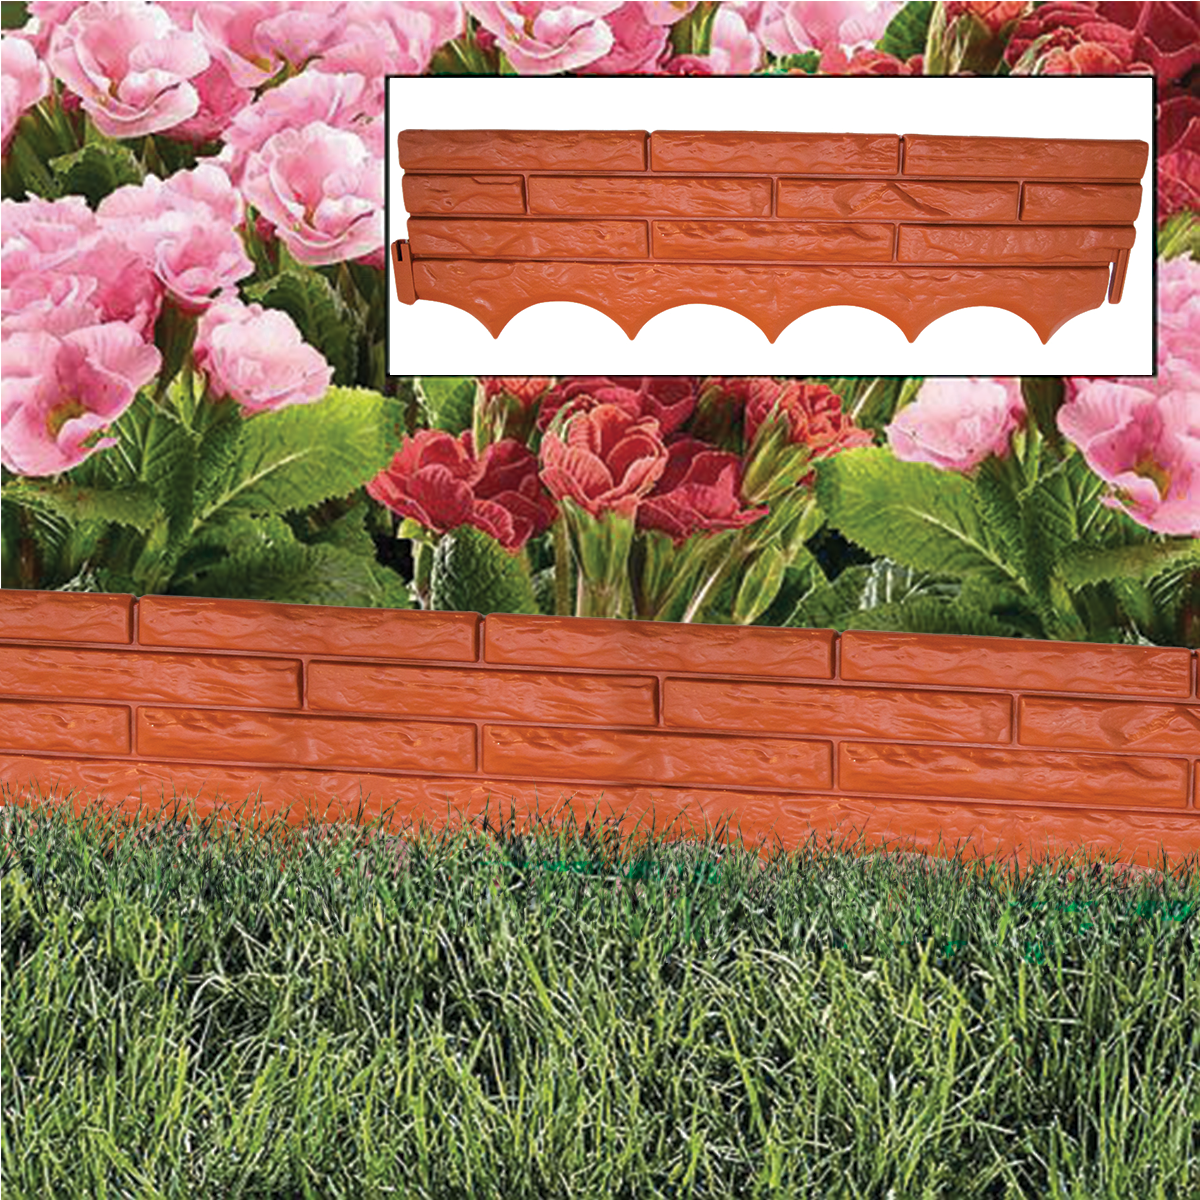 Brick Wall Garden Border Edging